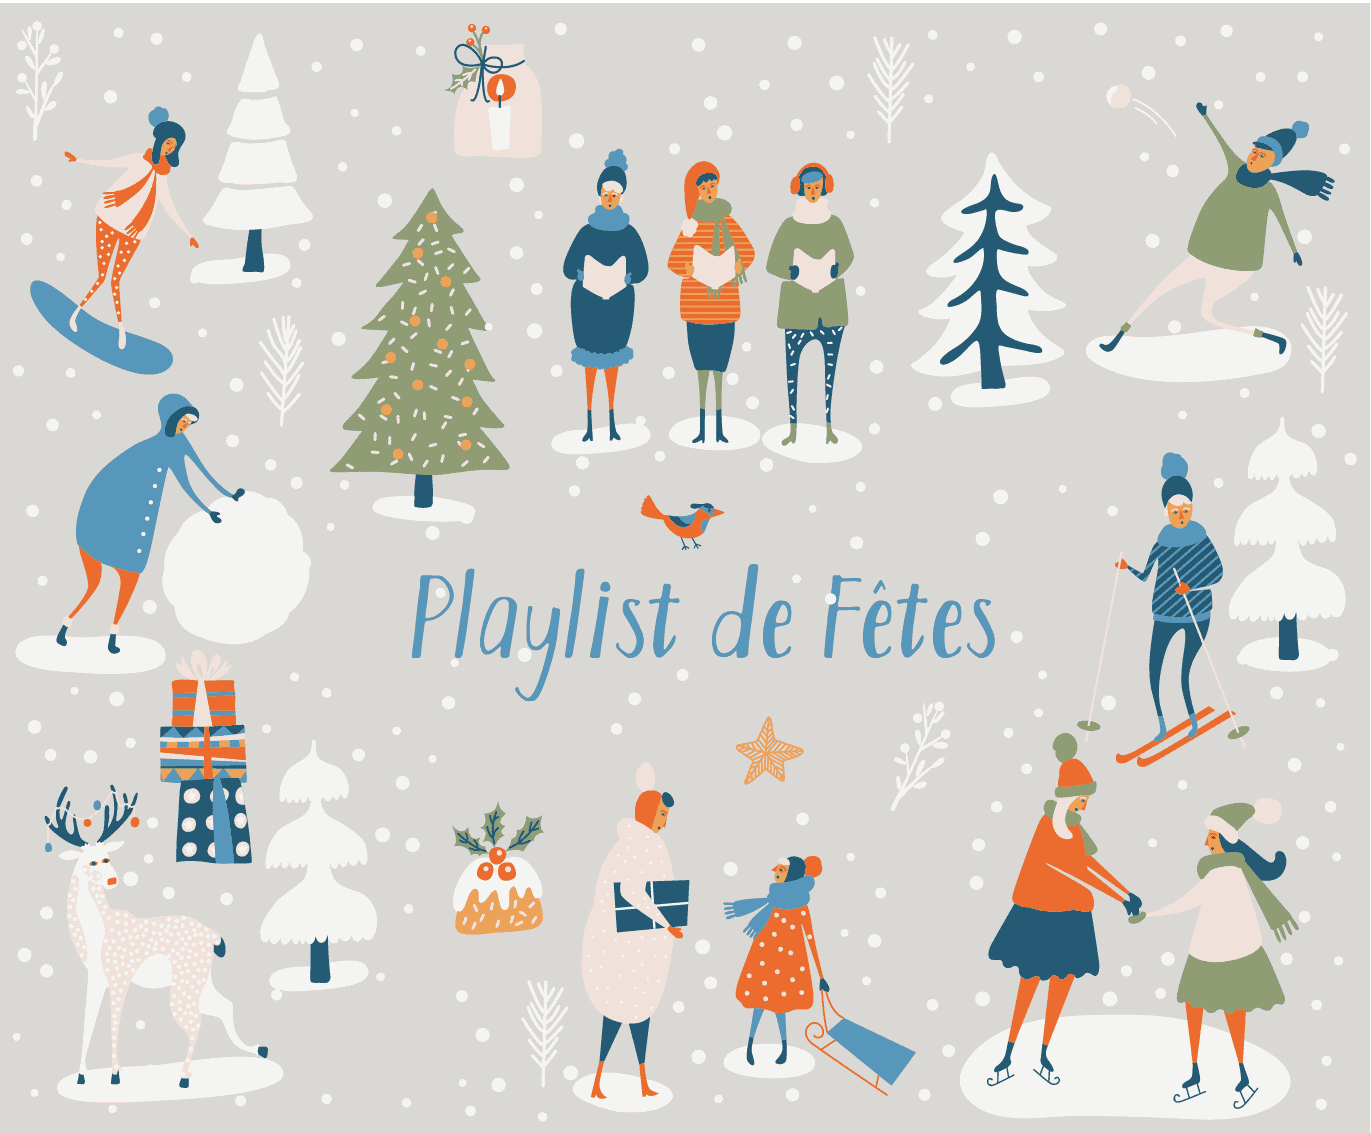 playlist-fetes-grafik-plus